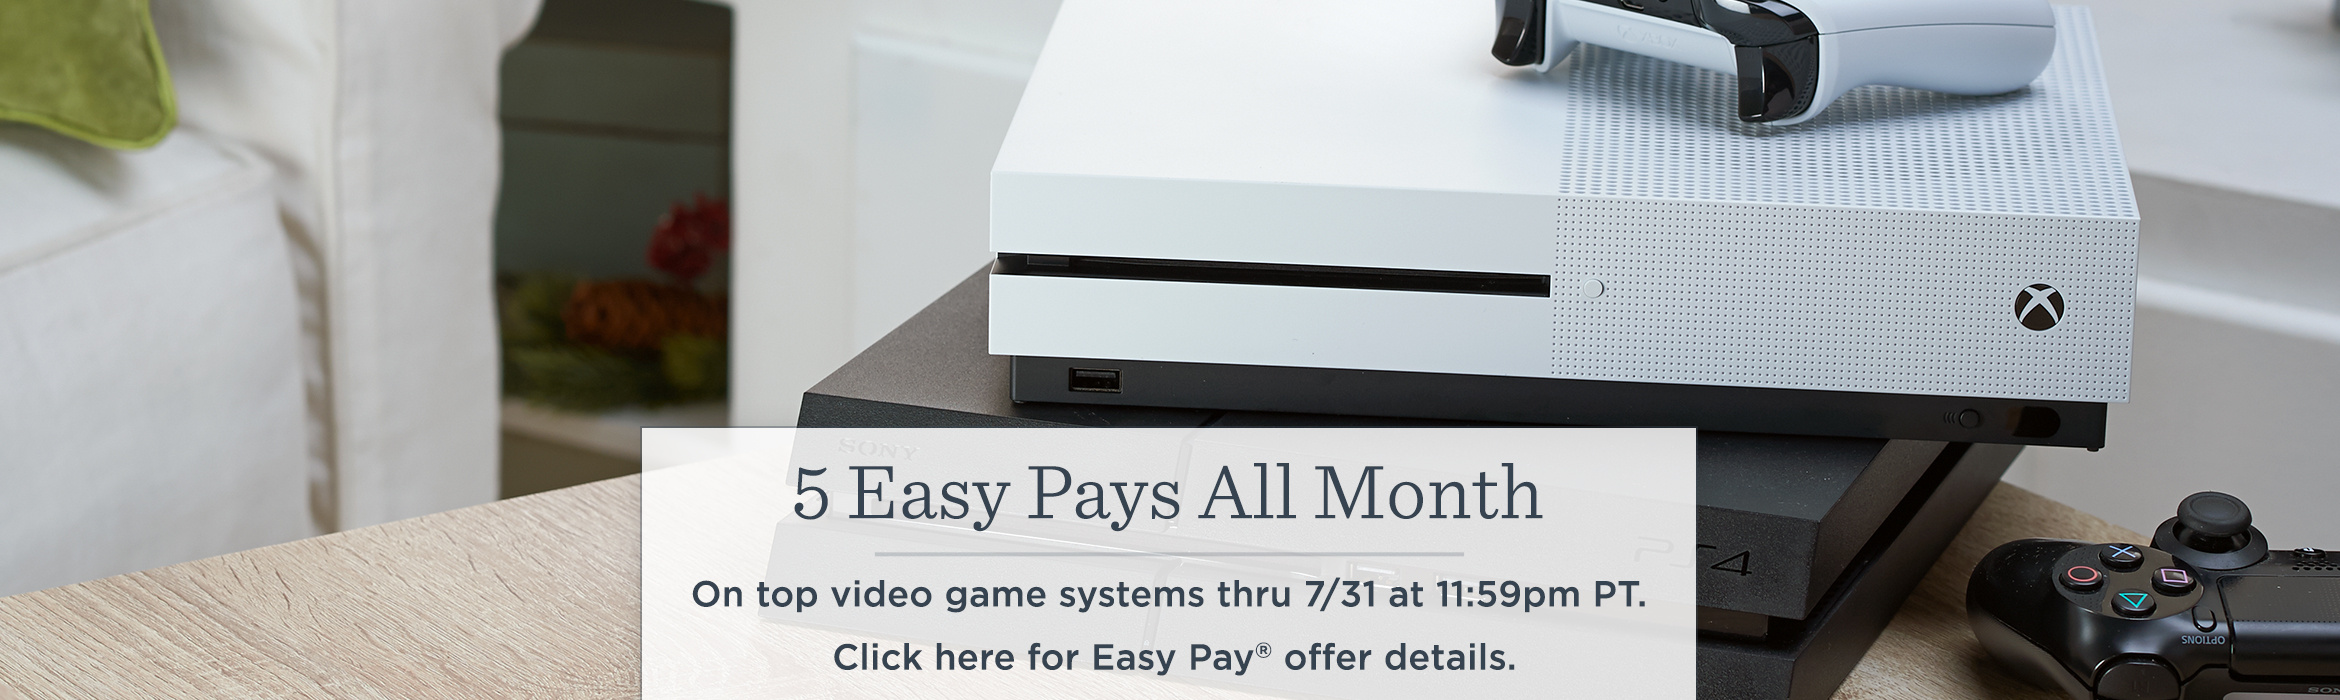 5 Easy Pays All Month. On top video game systems thru 7/31 at 11:59pm PT.  Click here for Easy Pay® offer details.